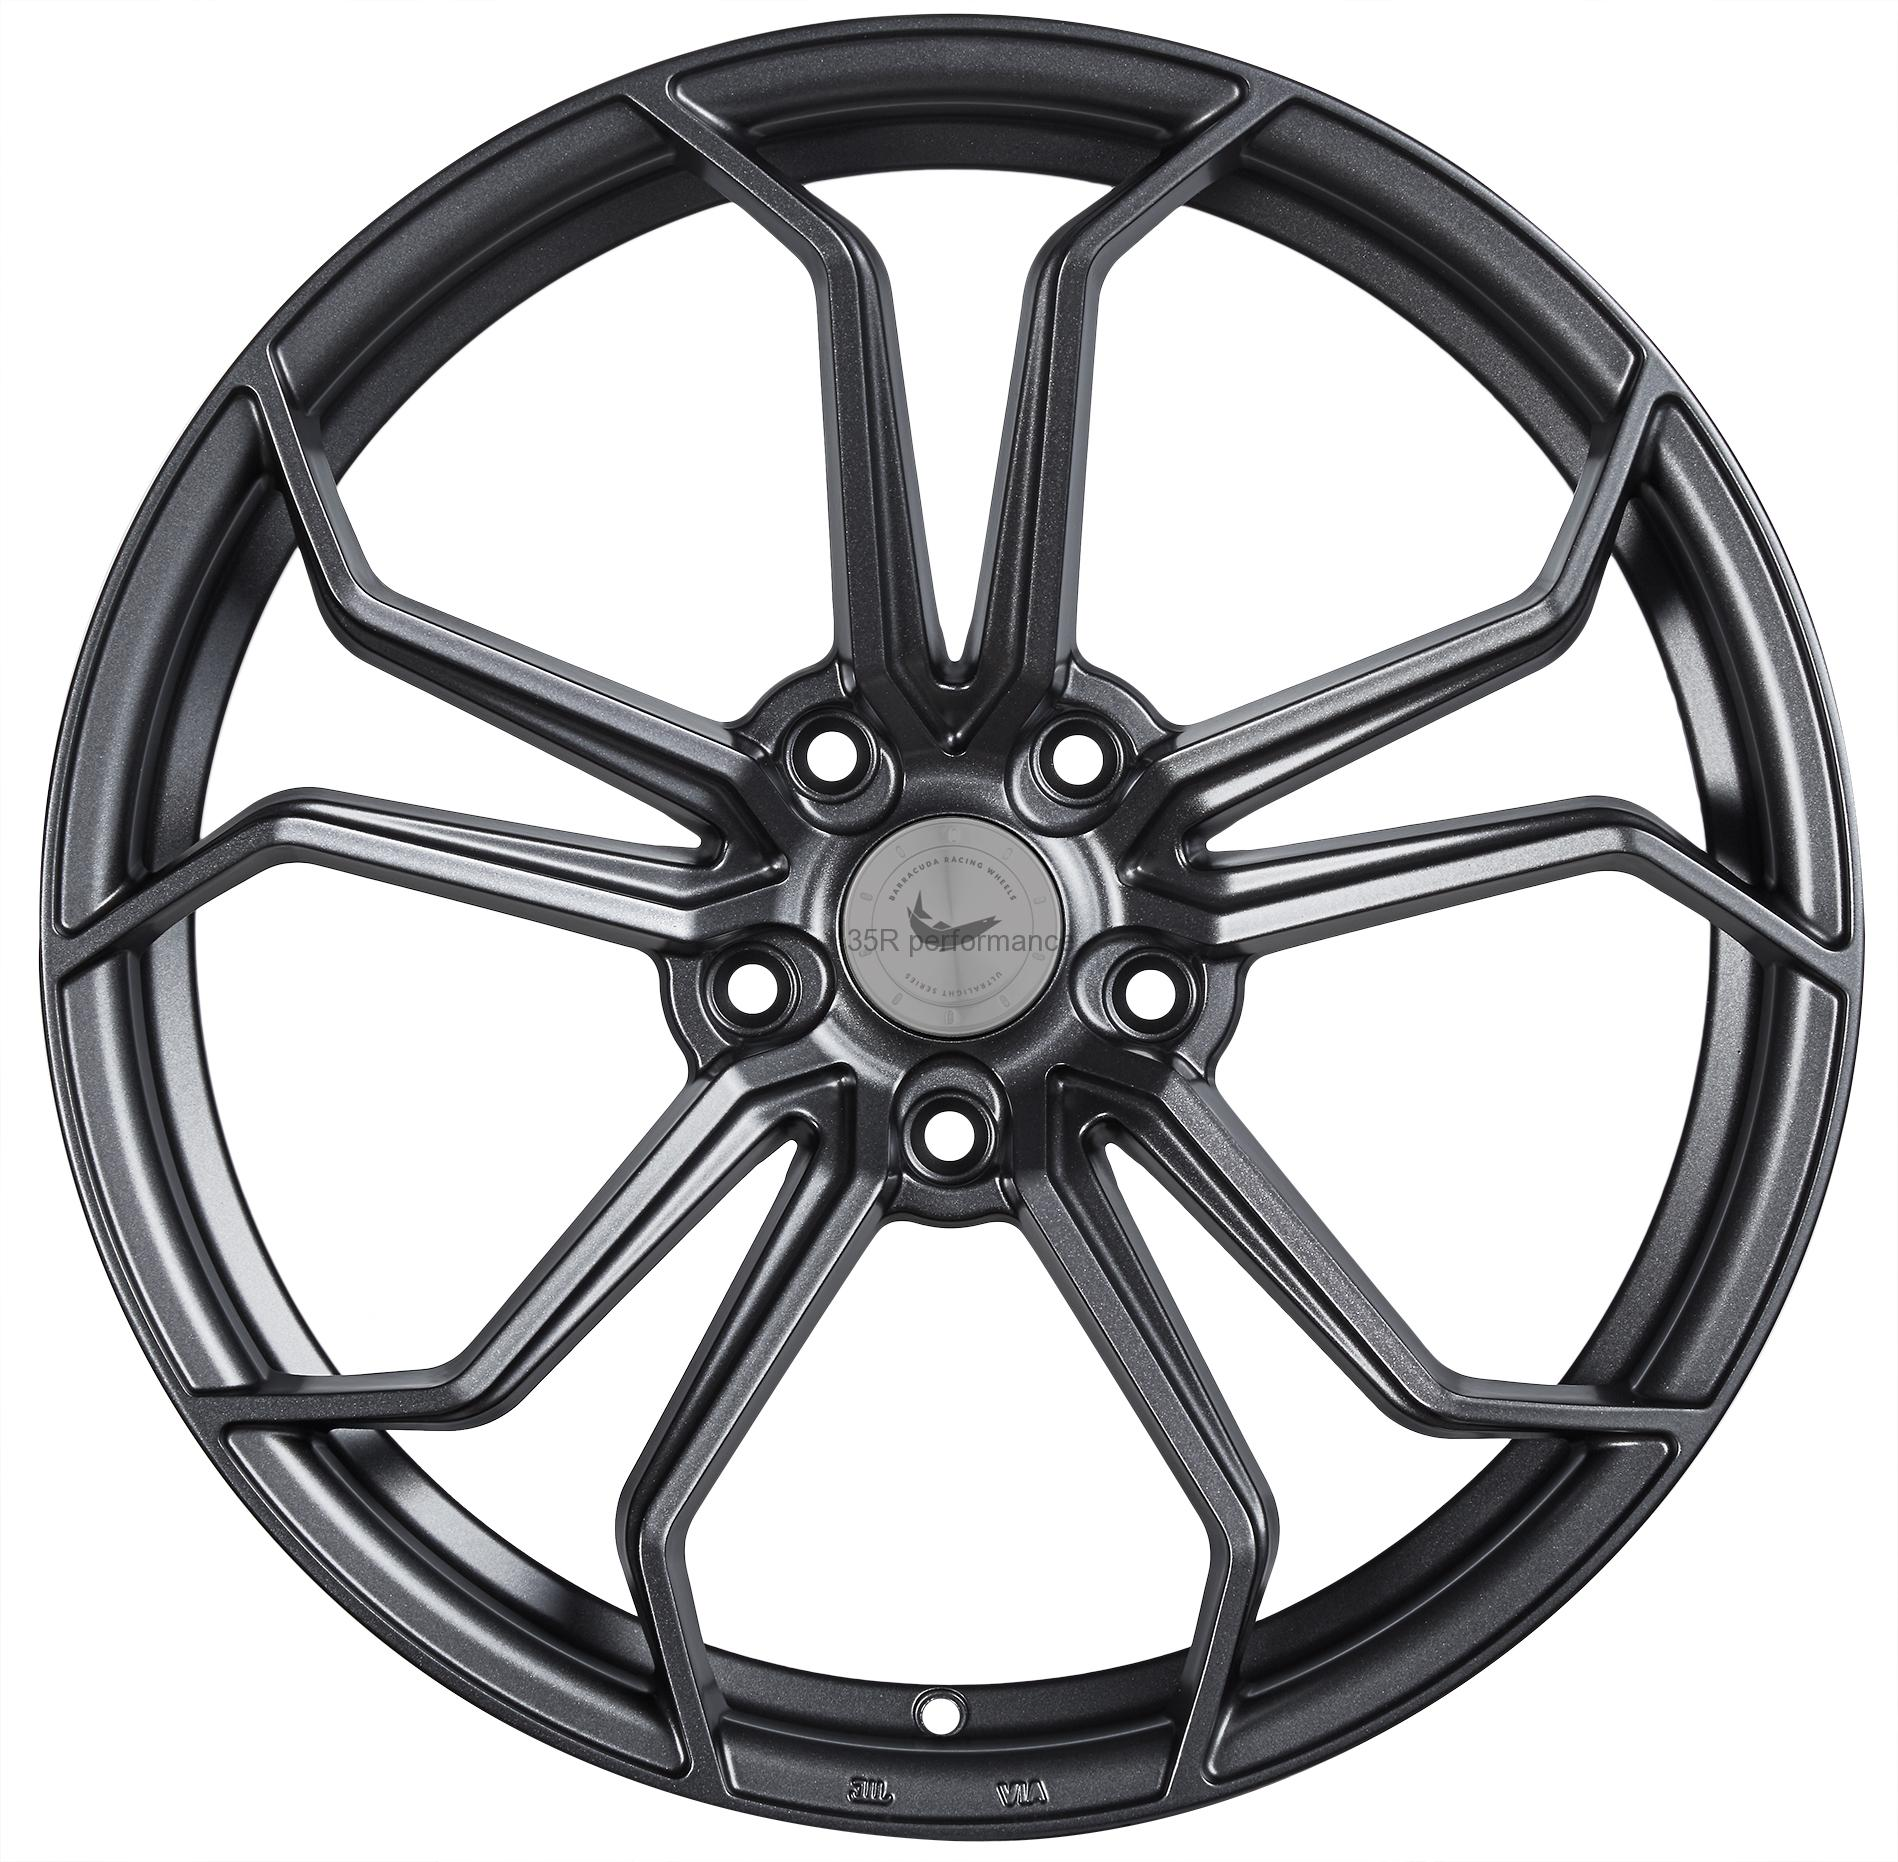 BARRACUDA ULTRALIGHT PROJECT 1.0 Mattgunmetal - 8,5x20 / 5x120 / ET43, RHPRO185043T/MGM